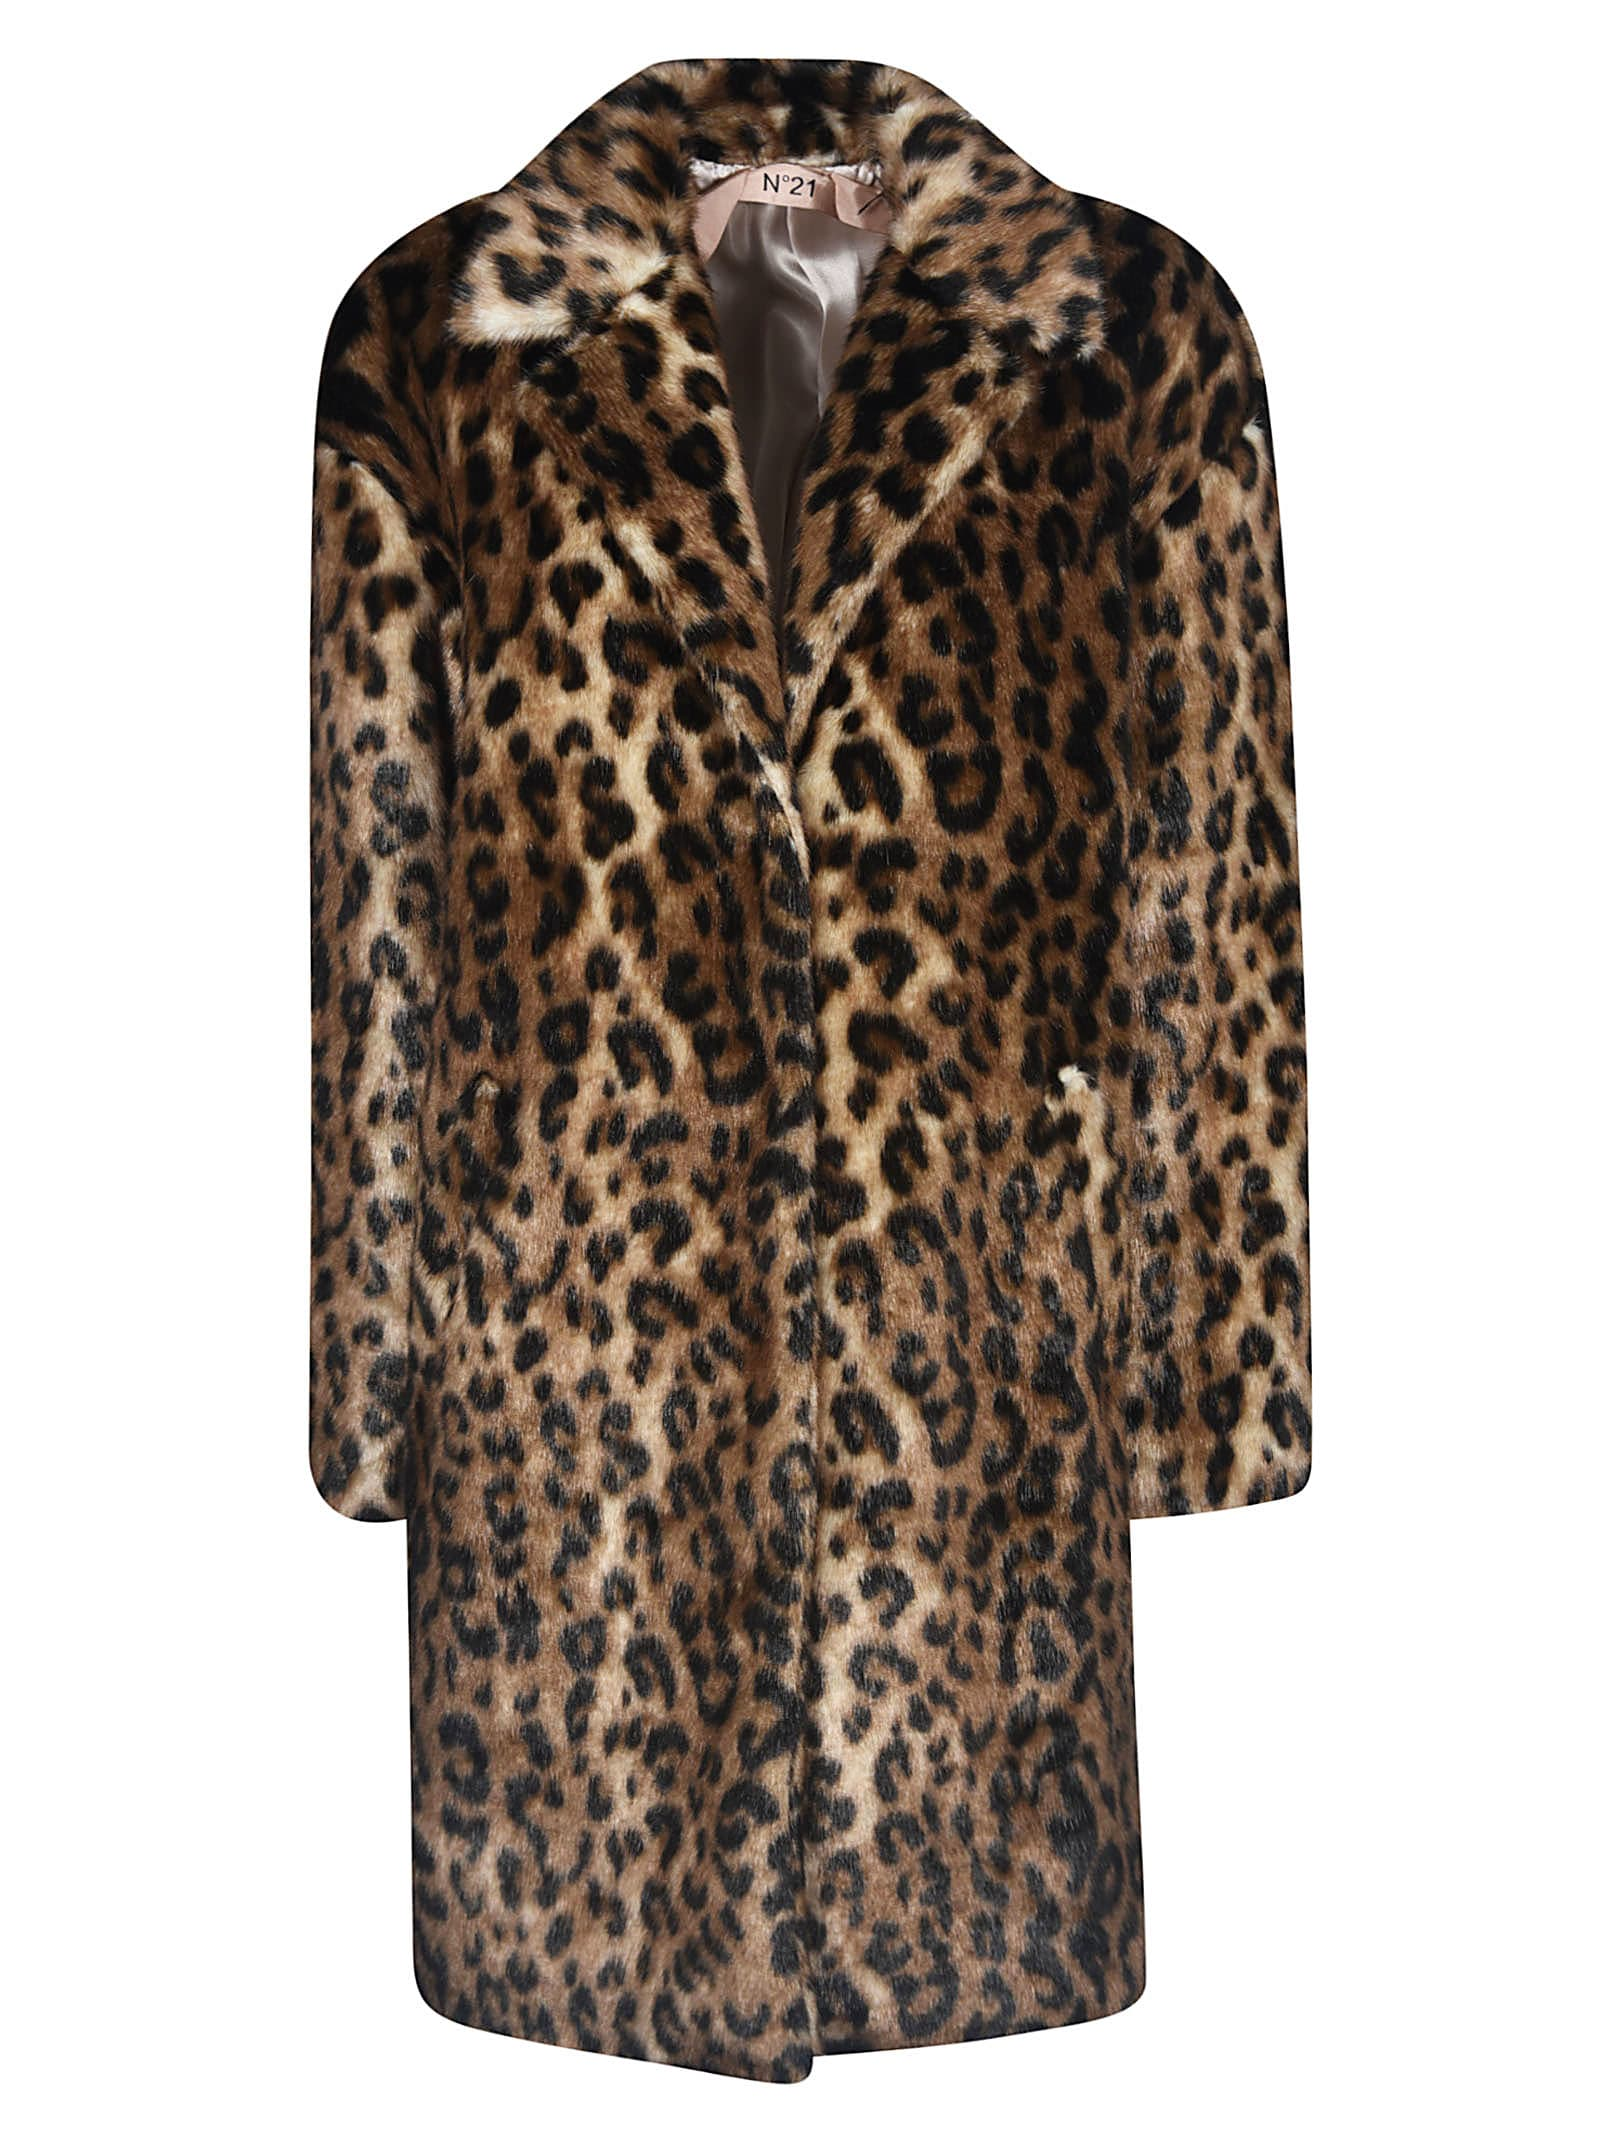 N.21 Leopard Printed Coat